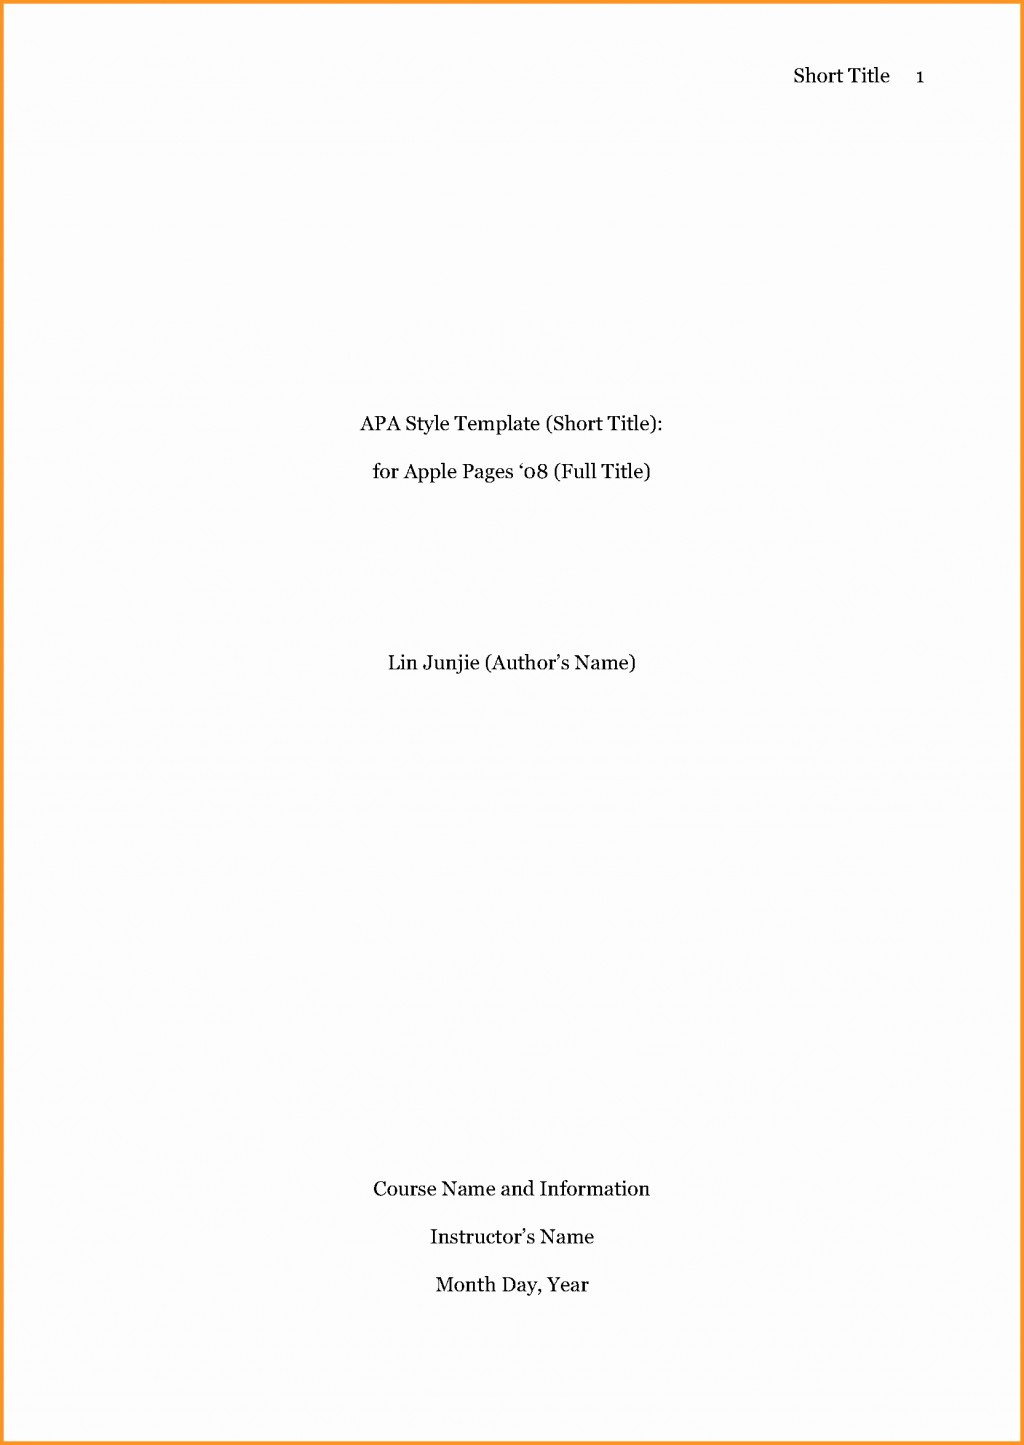 010 Research Paper Apamat Cover Page Fresh Sample Titles Bamboodownunder Of Template Rare For Apa Format Title Large